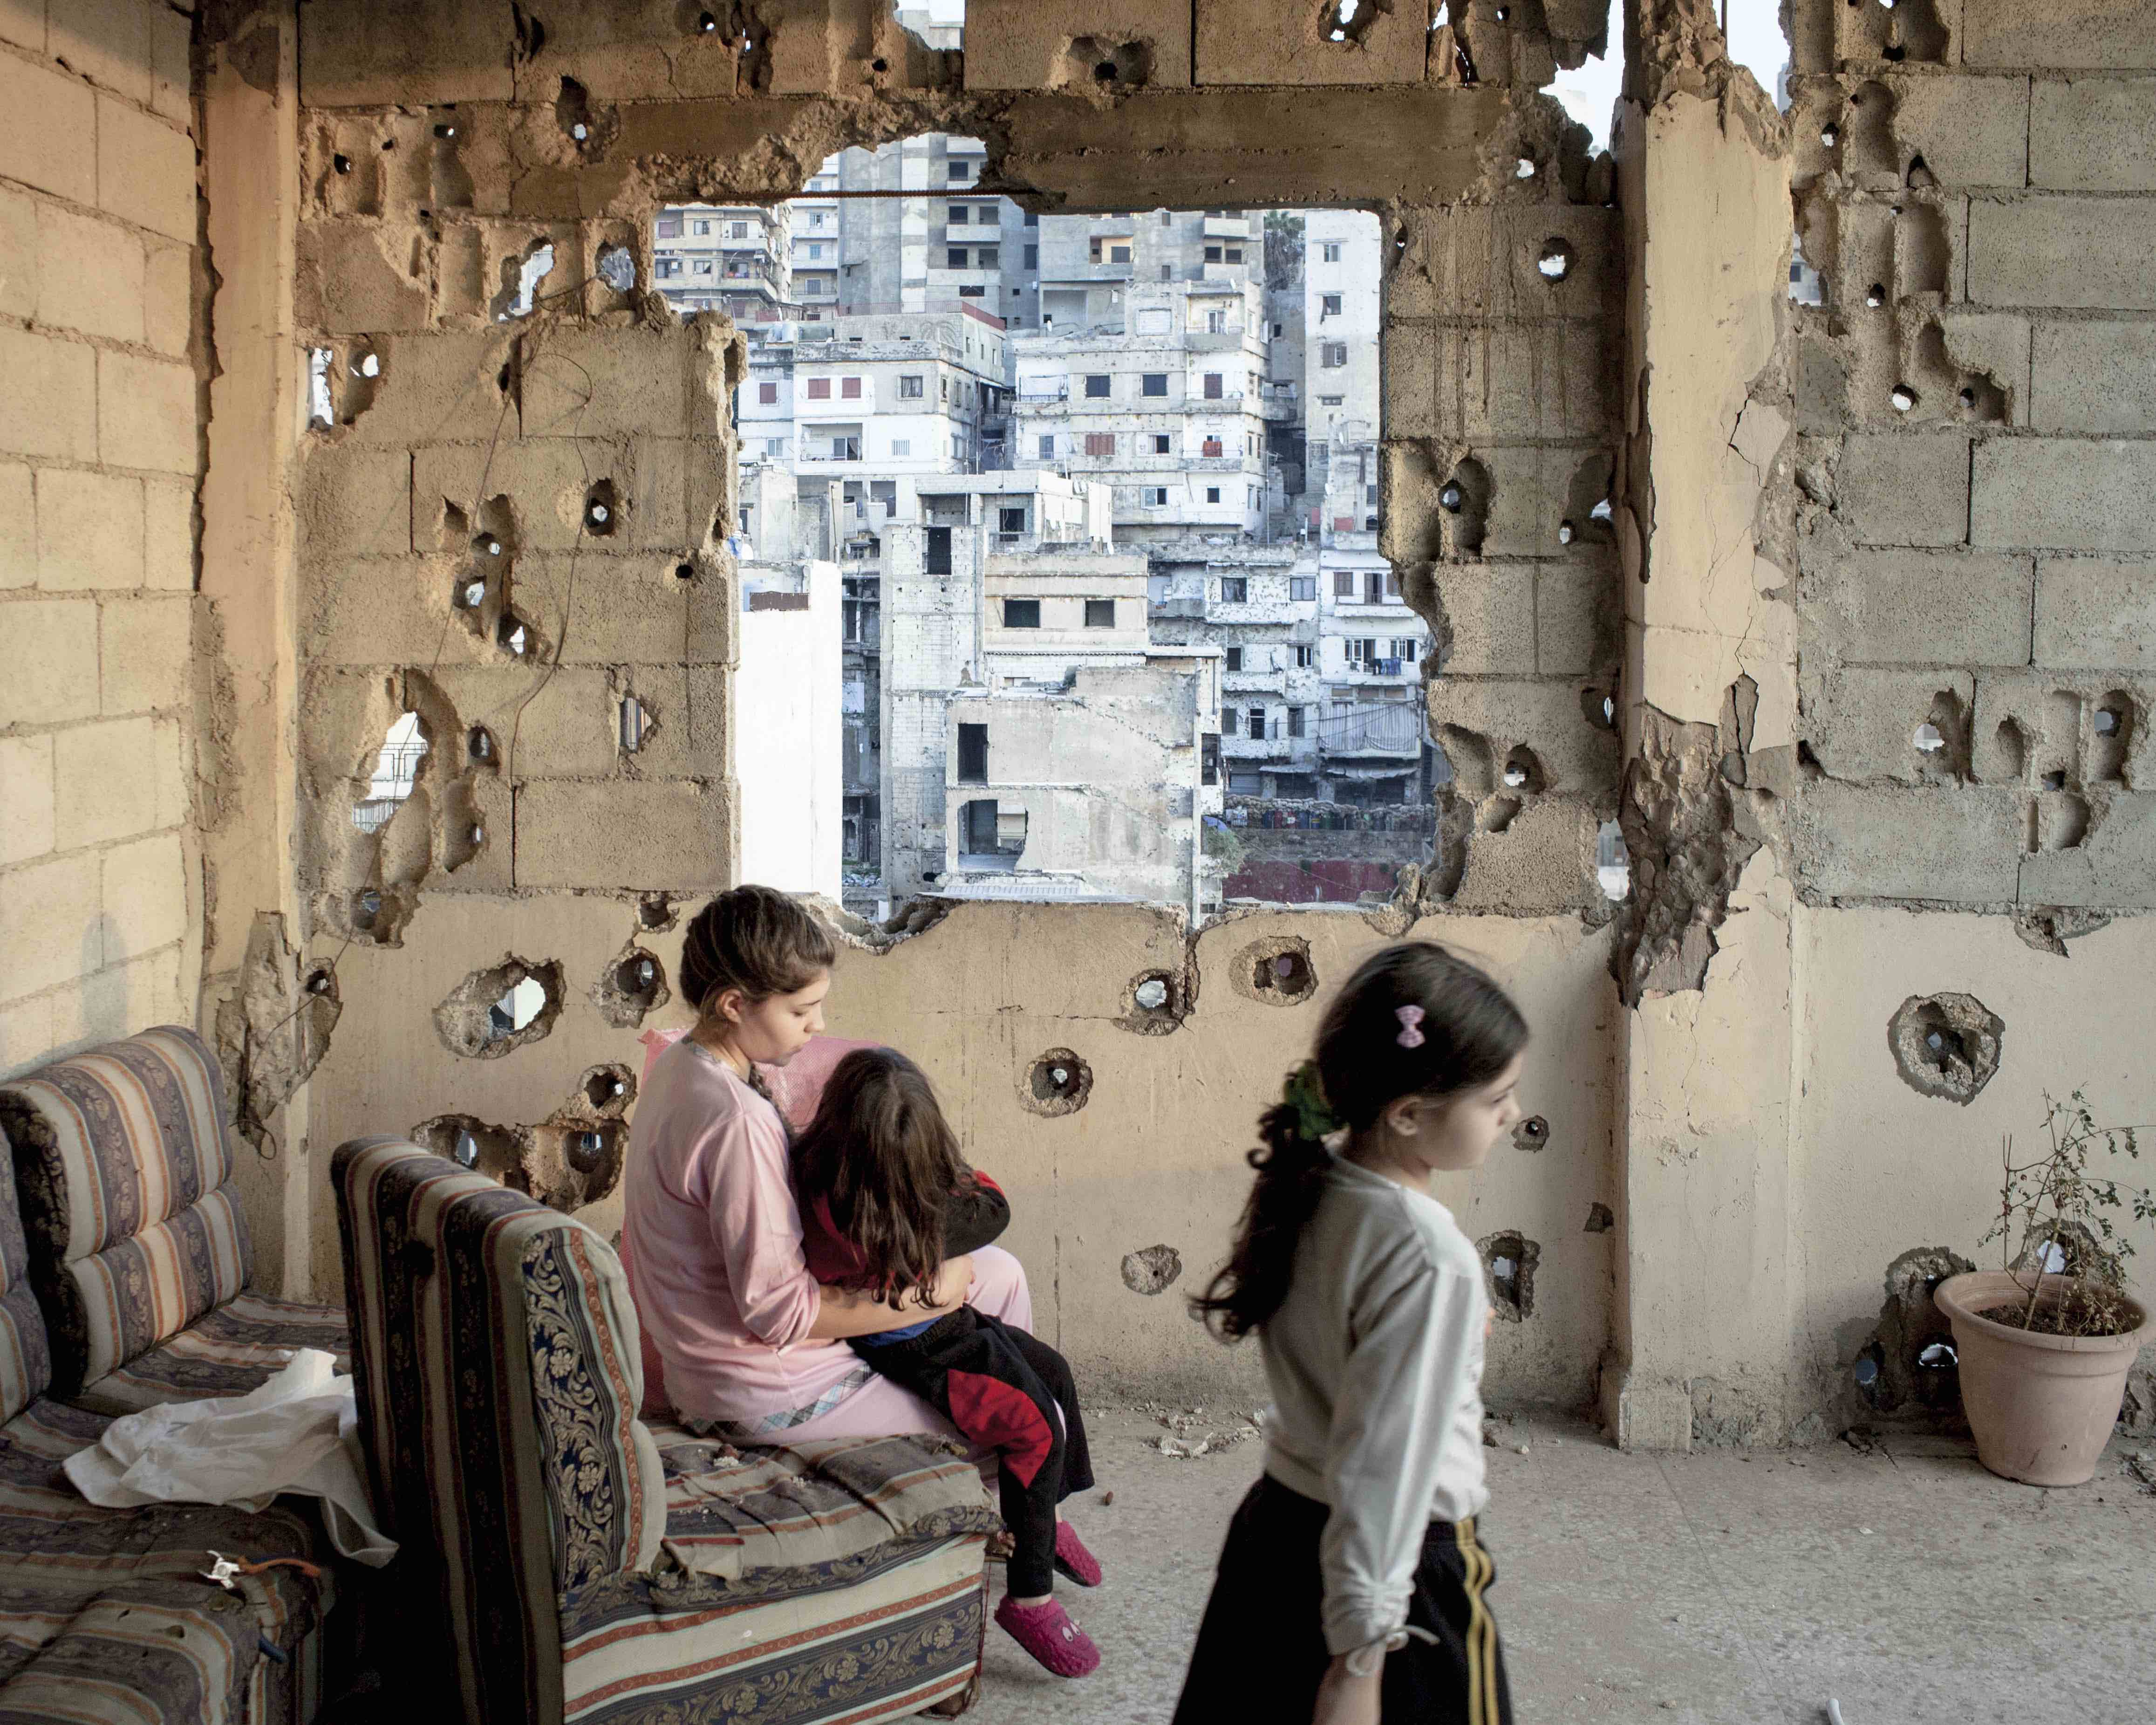 Lebanon. Tripoli. November 2013. Interior of an apartment on Syria Street destroyed by the fights, where the sectarian fights between Sunnis and Shiite are more violent © Lorenzo Meloni